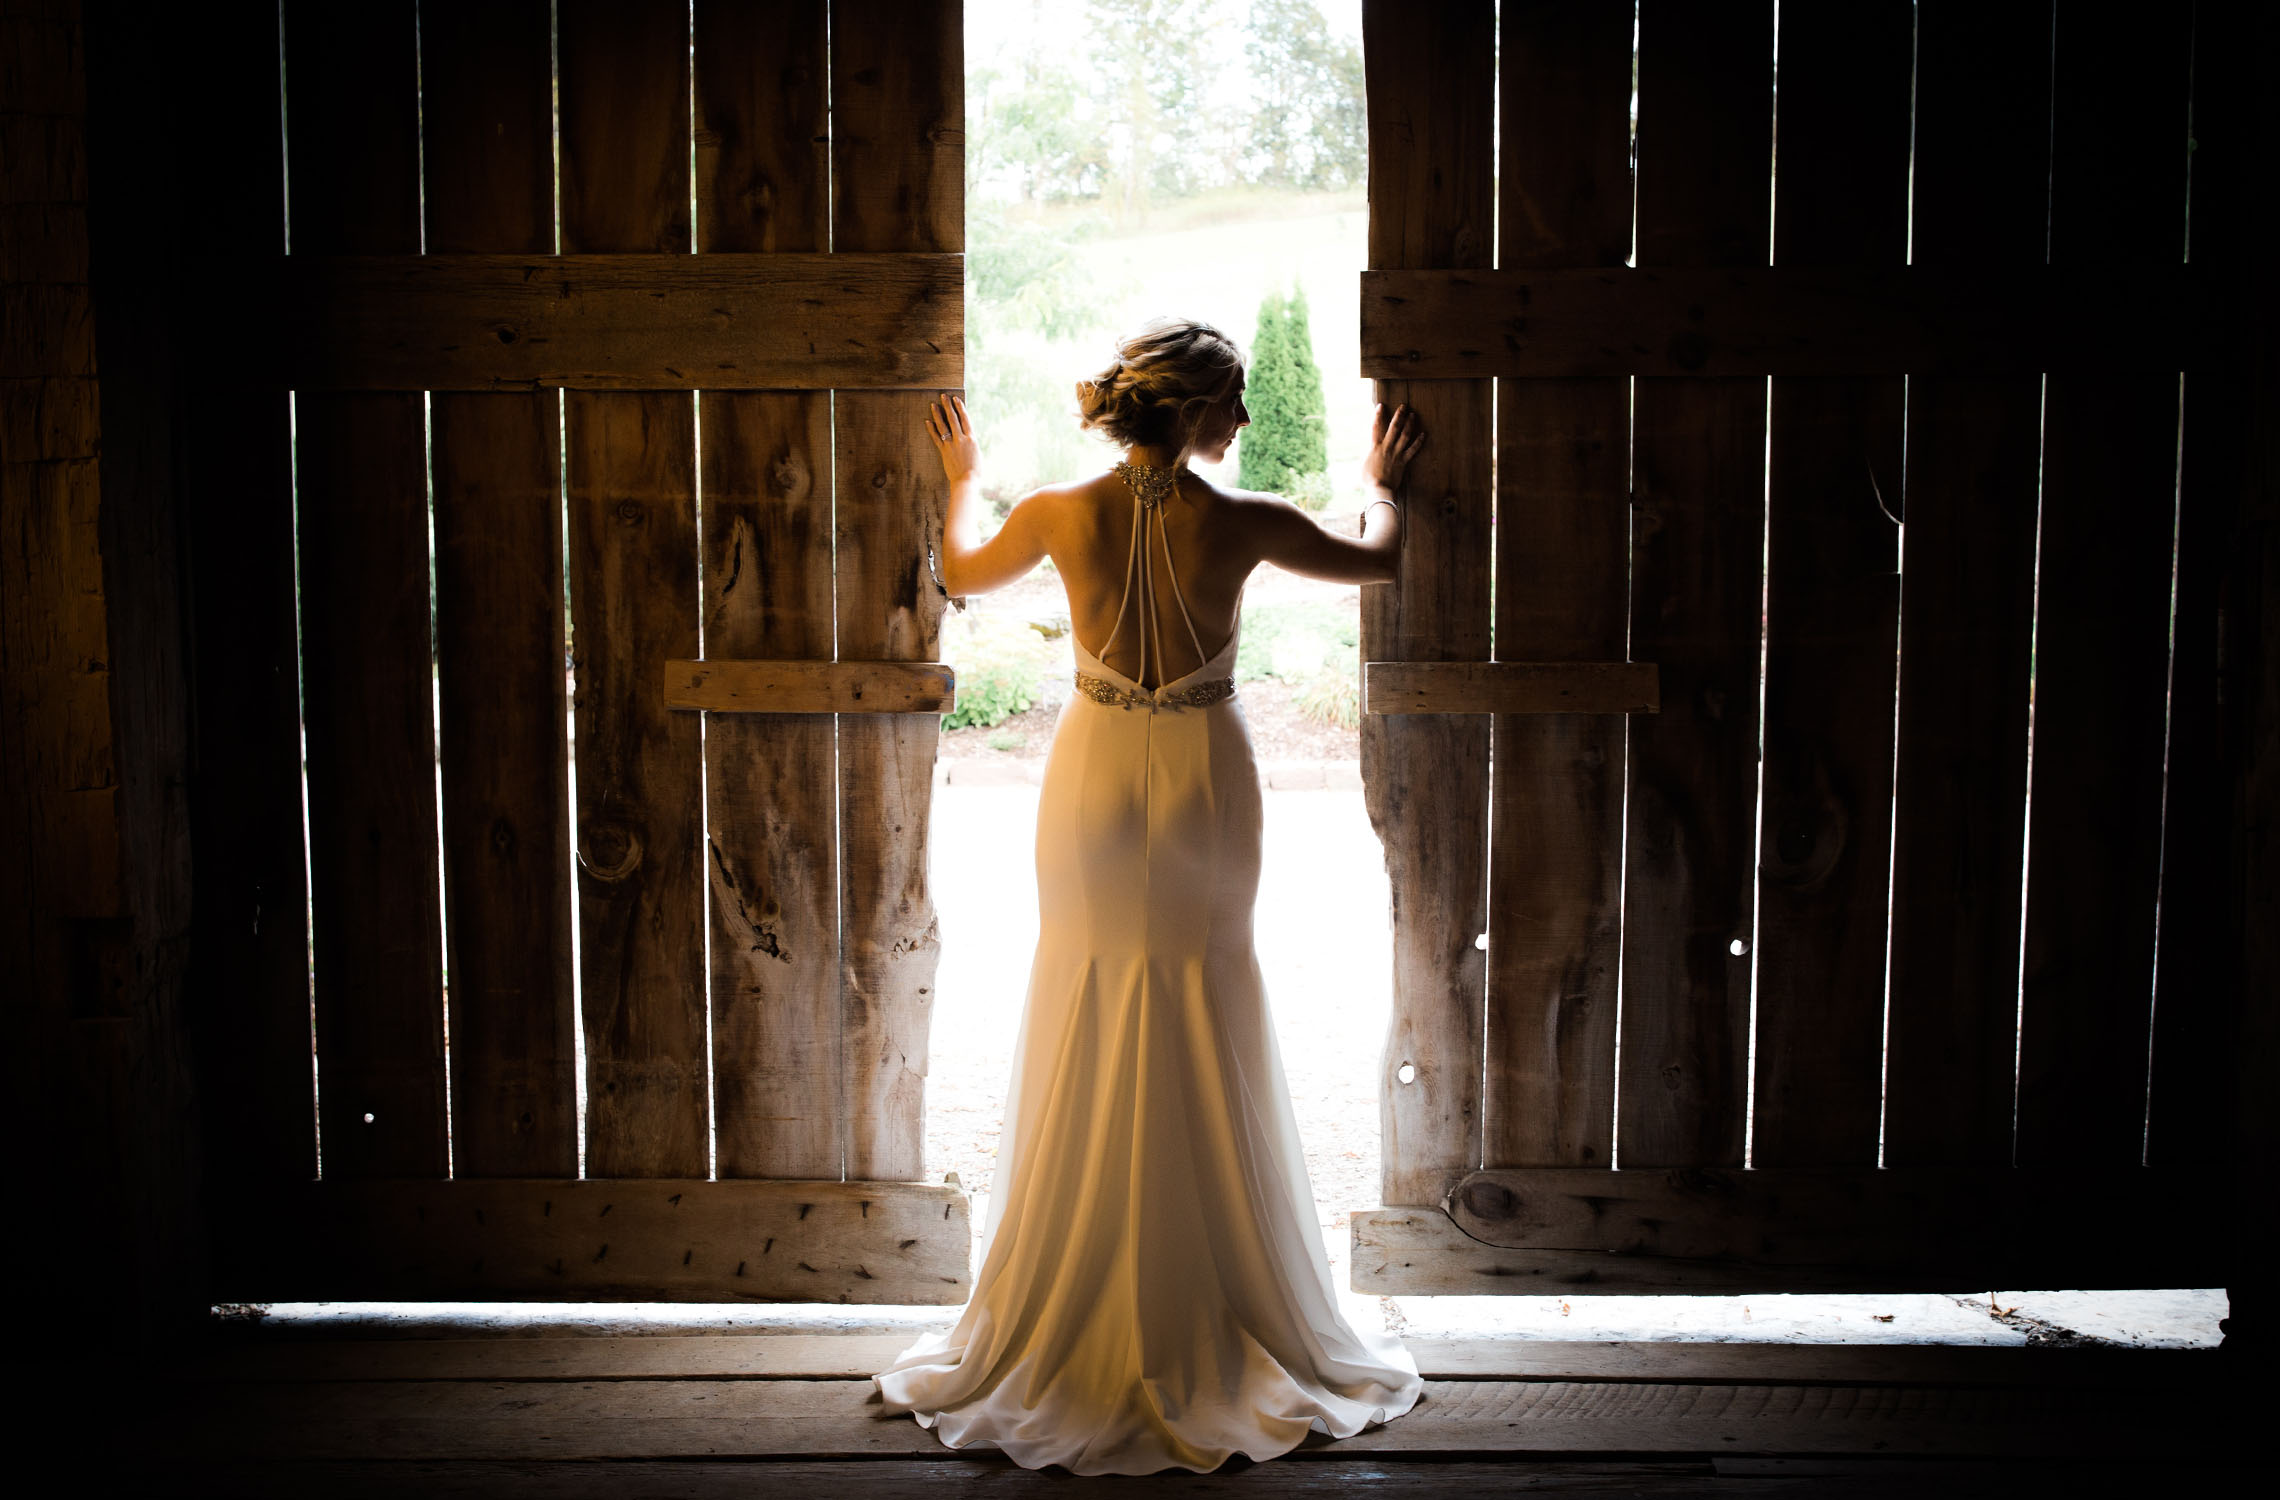 Gorgeous shot of bride with sunlight streaming thru the gaps of the old barn.